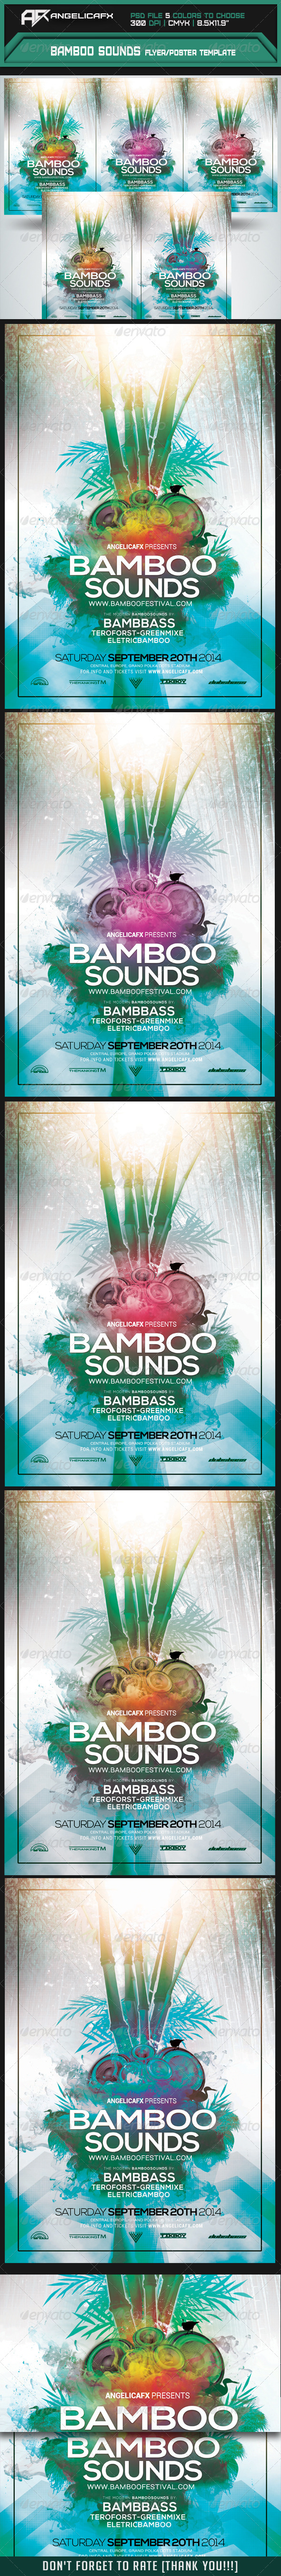 GraphicRiver Bamboo Sounds Flyer Poster Template 8259411